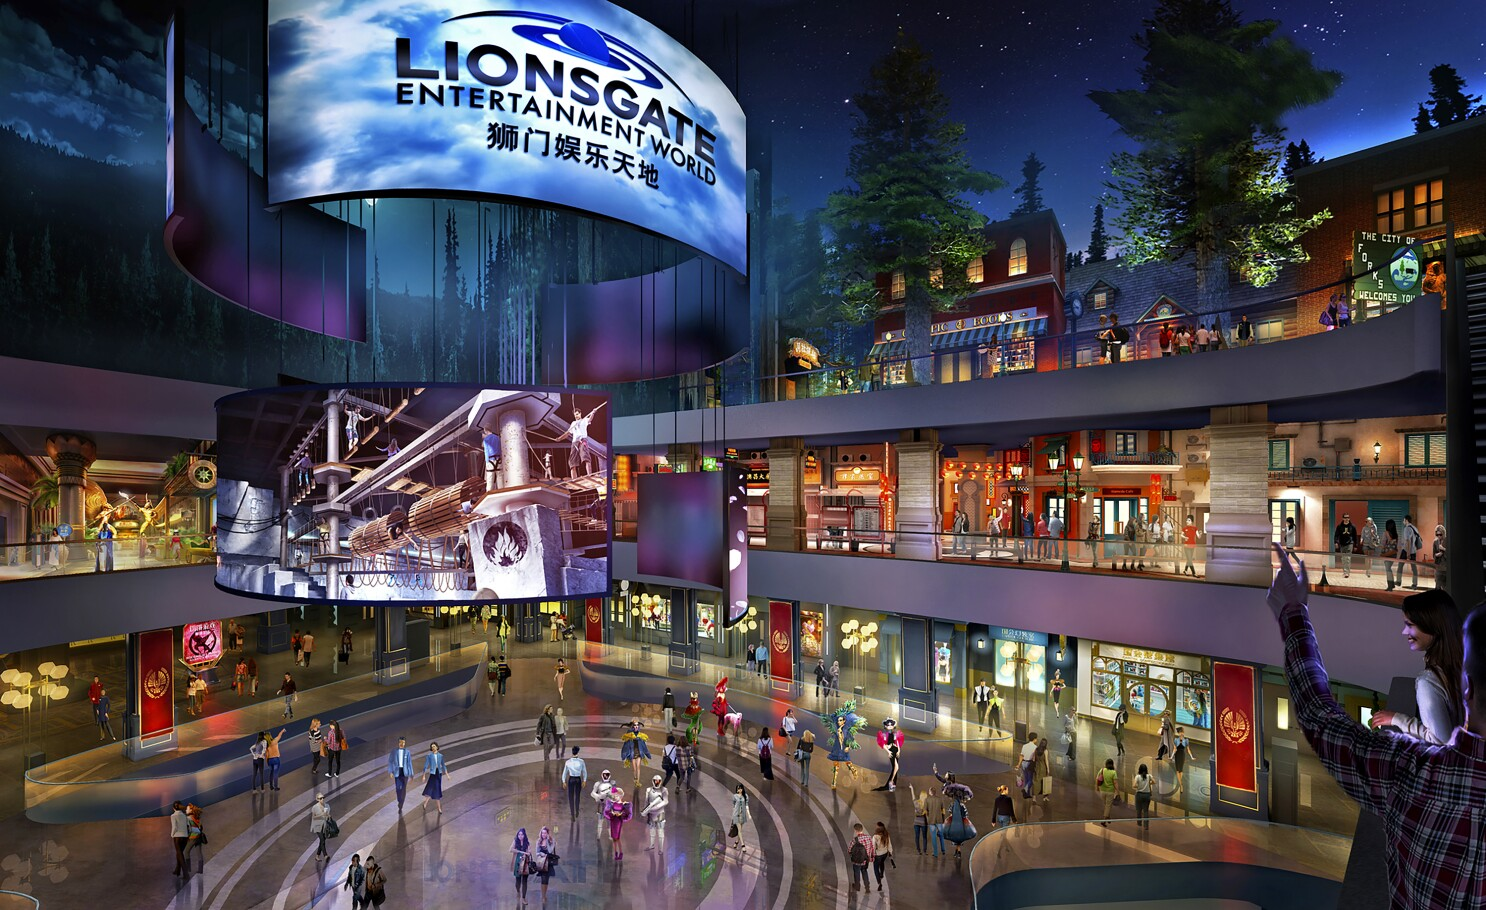 'Hunger Games' ride anchors edgy new adult theme park in China